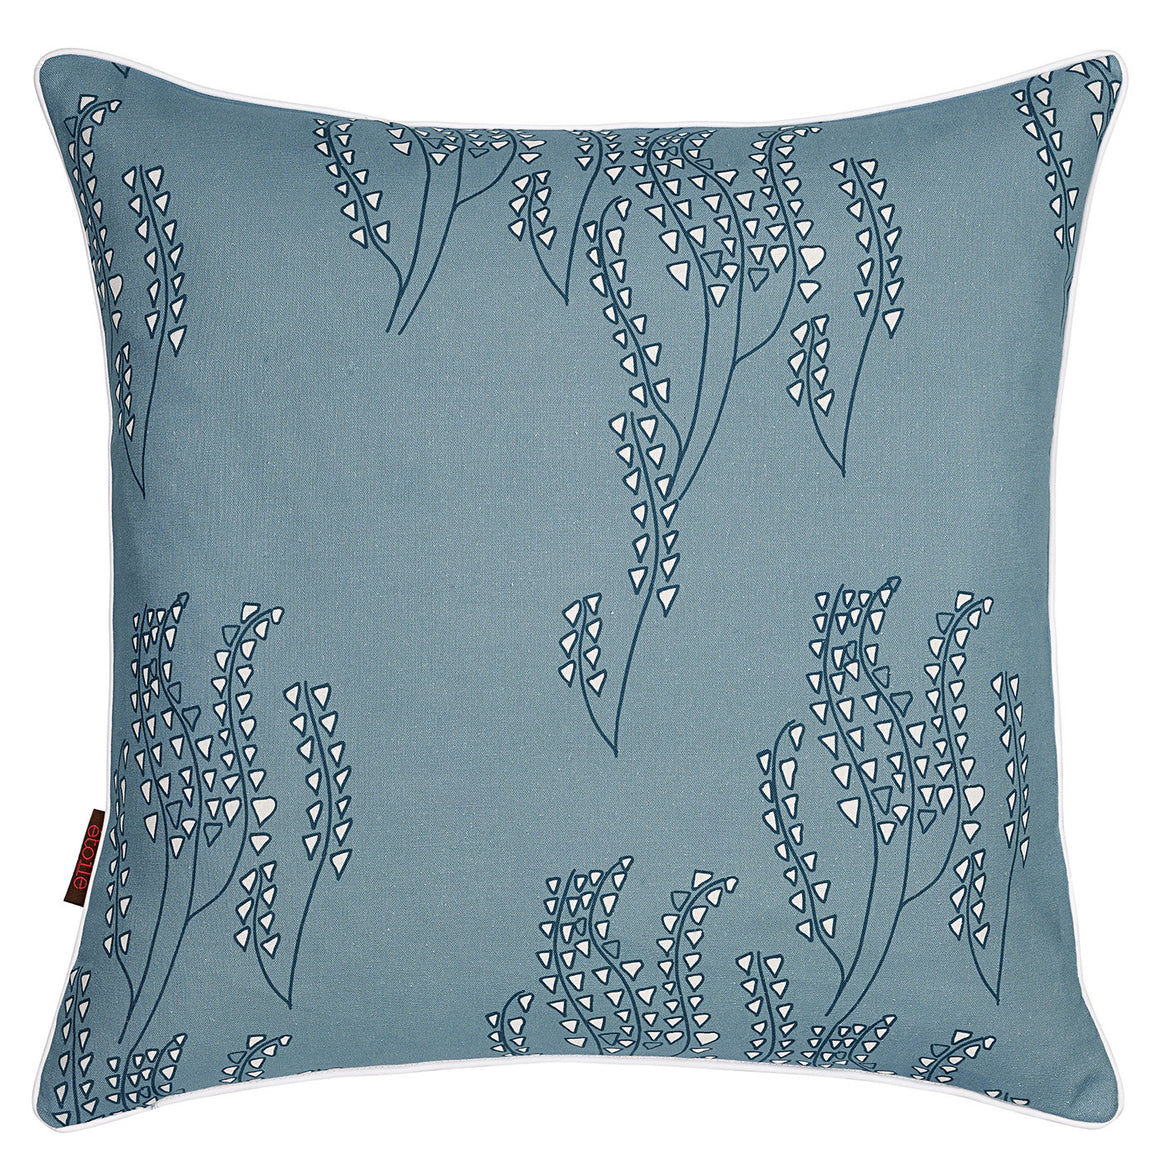 Yuma Grass Pattern Linen Cushion in Light Chambray Blue